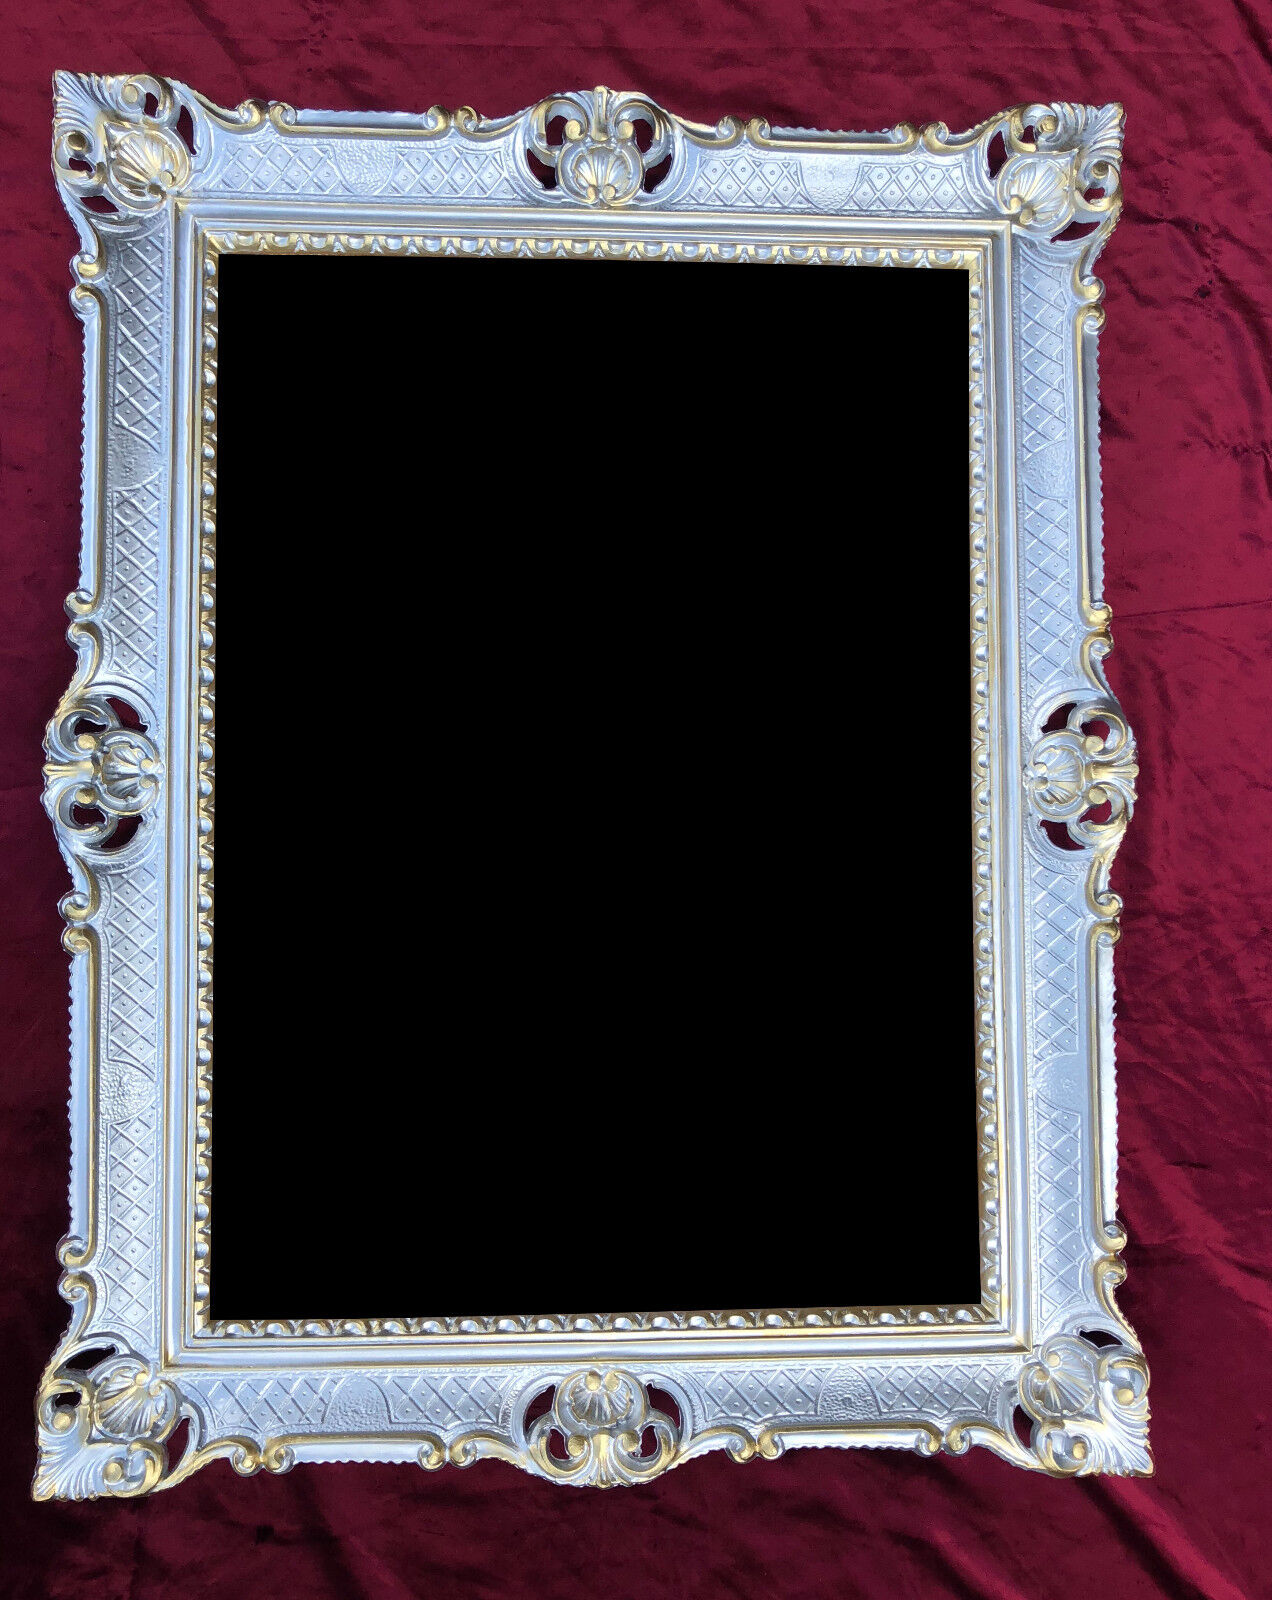 Bilderrahmen Collage Porta Details About Picture Frame Hochzeits Frame Selfie Photo Requisits For Wedding Photo Booth